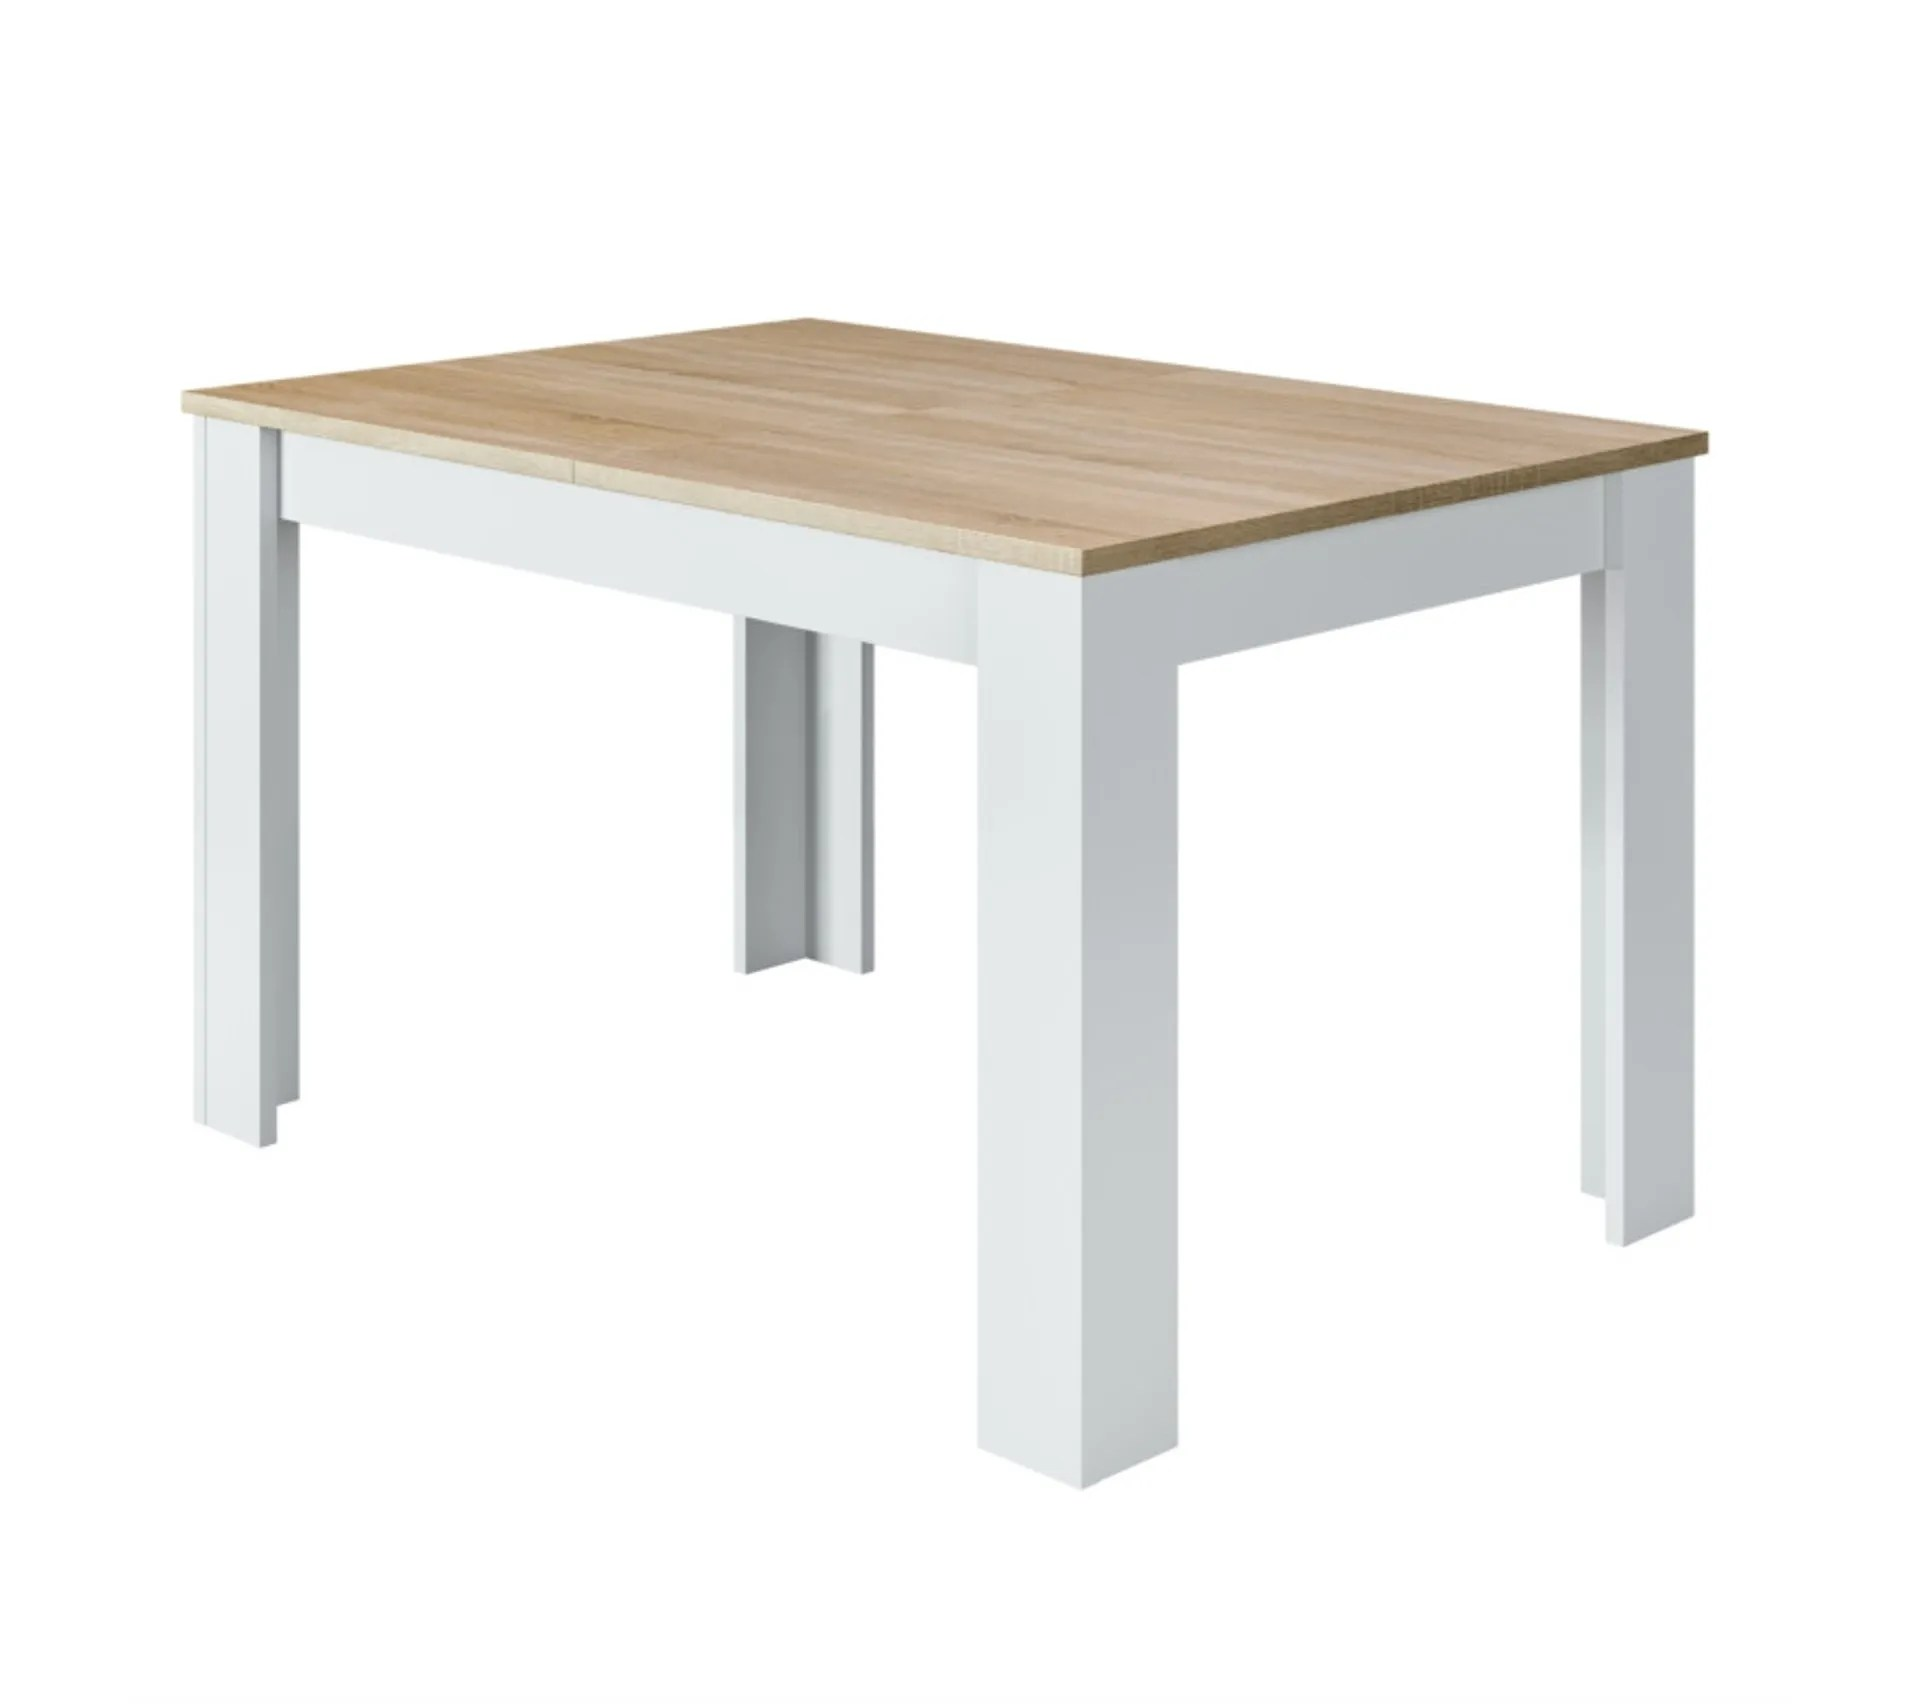 table a manger extensible kenda 6 a 8 personnes scandinave blanc brillant et decor chene